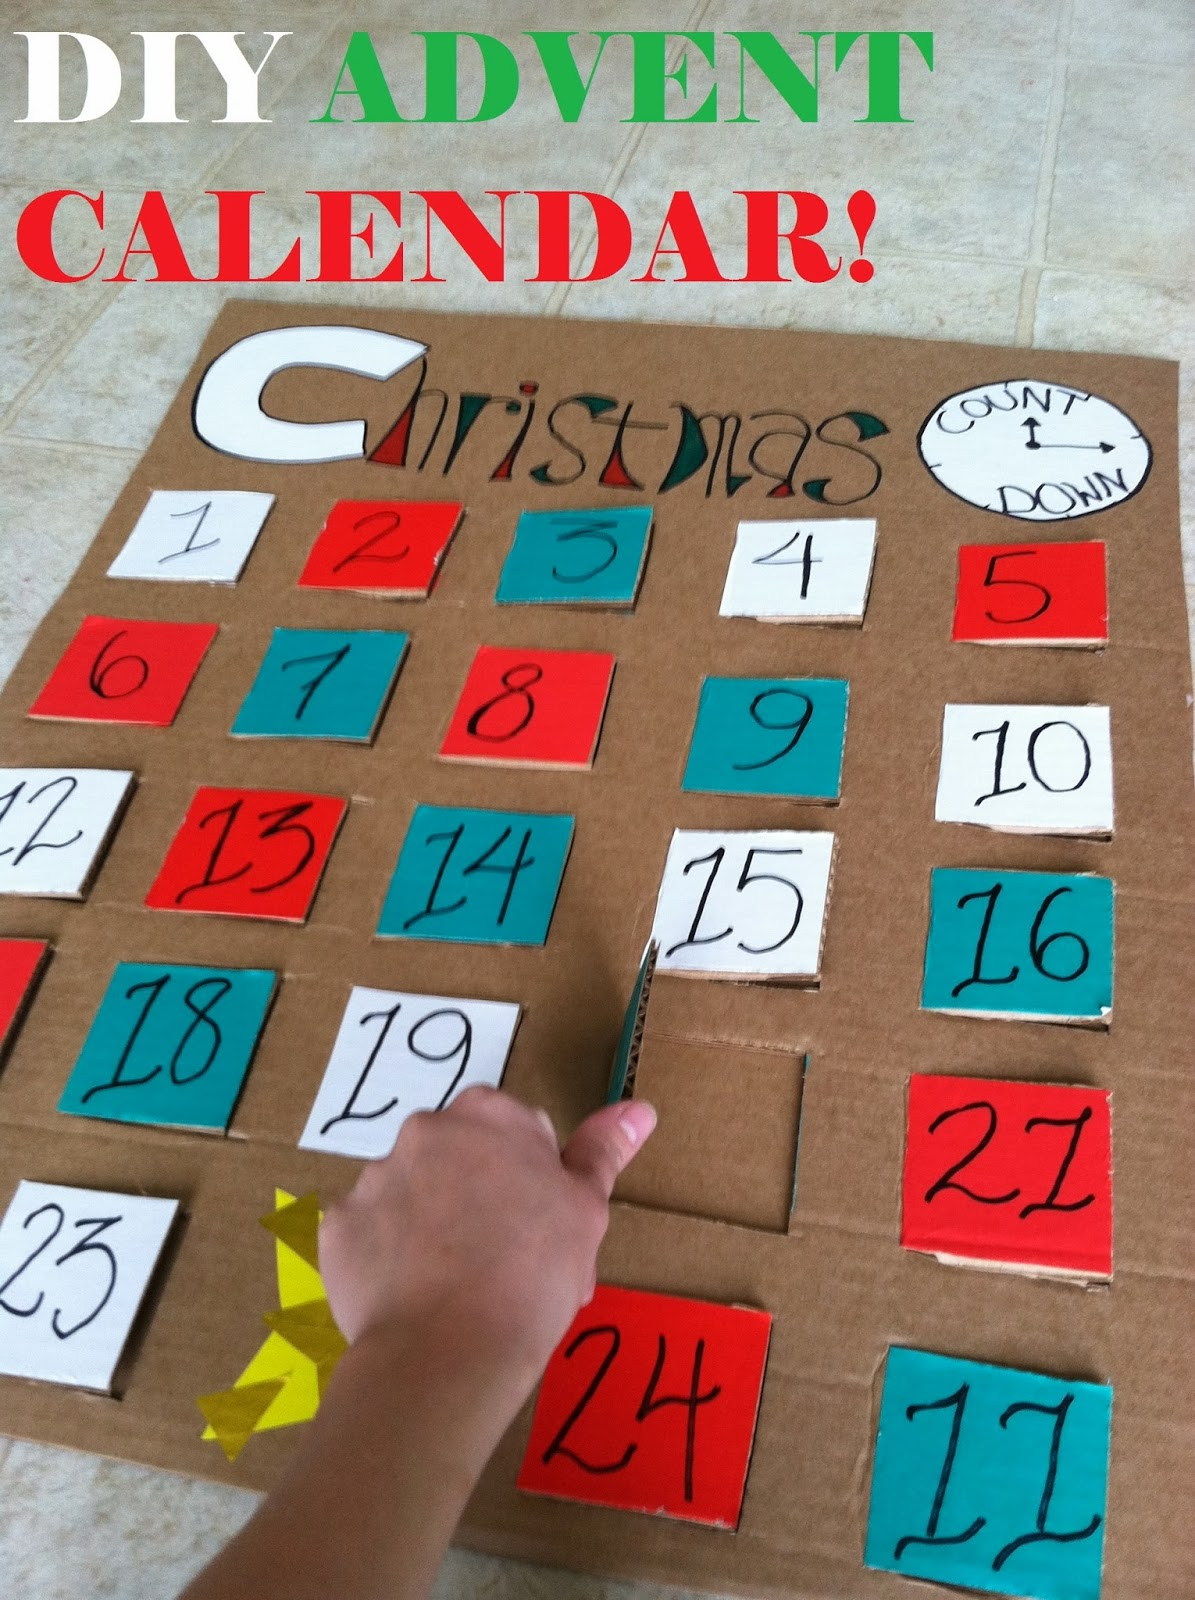 Diy Calendar Countdown : My american confessions large diy christmas advent